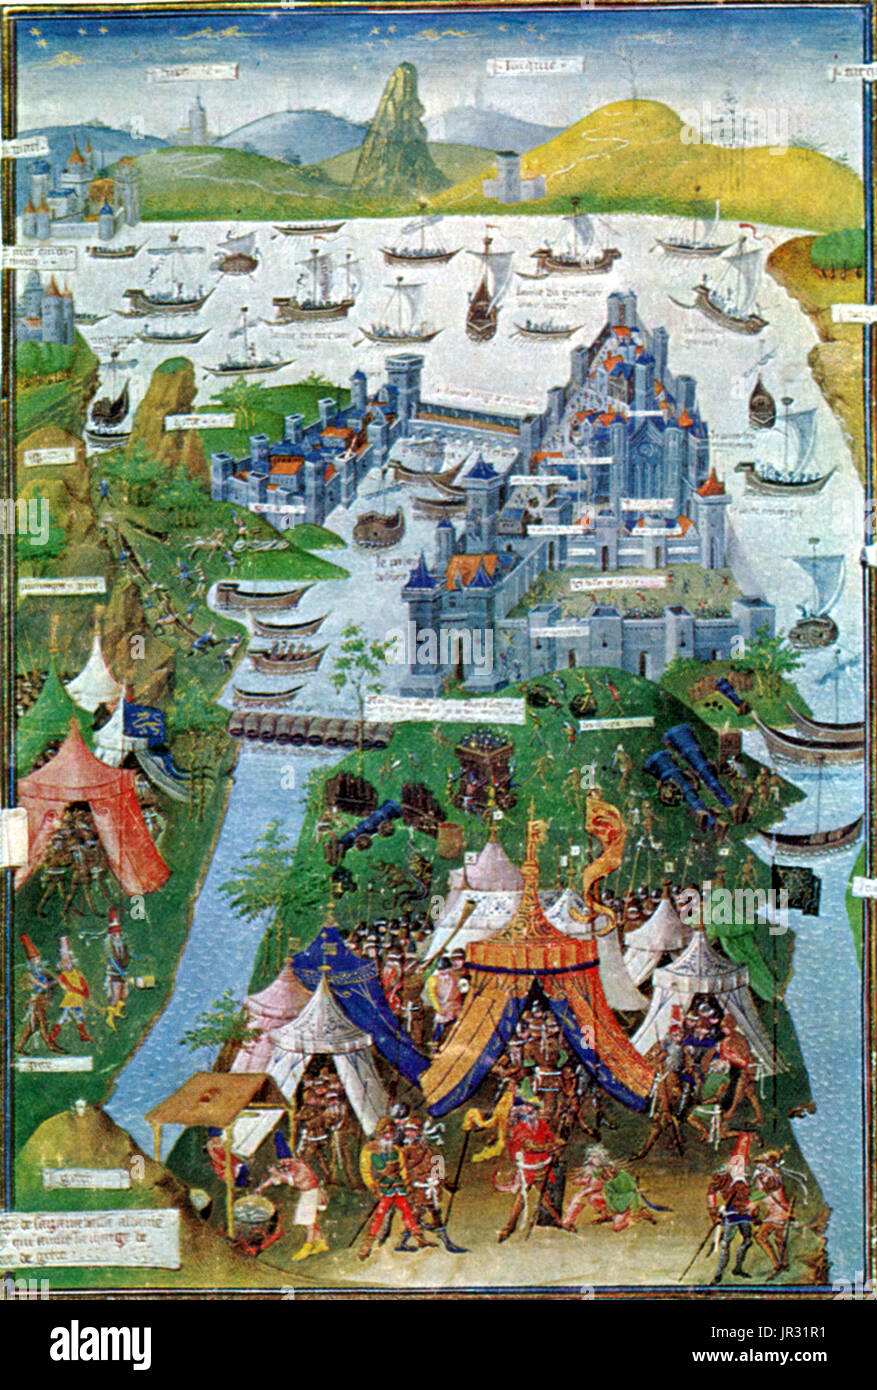 The Fall of Constantinople was the capture of the capital of the Byzantine Empire by an invading army of the Ottoman Empire on May 29, 1453. The Ottomans were commanded by Mehmed the Conqueror, the seventh sultan of the Ottoman Empire, who defeated an army commanded by Byzantine Emperor Constantine XI Palaiologos. The conquest of Constantinople followed a 53 day siege that had begun on April 6, 1453. The capture of Constantinople marked the end of the Roman Empire, an imperial state that had lasted for nearly 1,500 years. The Ottoman conquest of Constantinople also dealt a massive blow to Chri - Stock Image